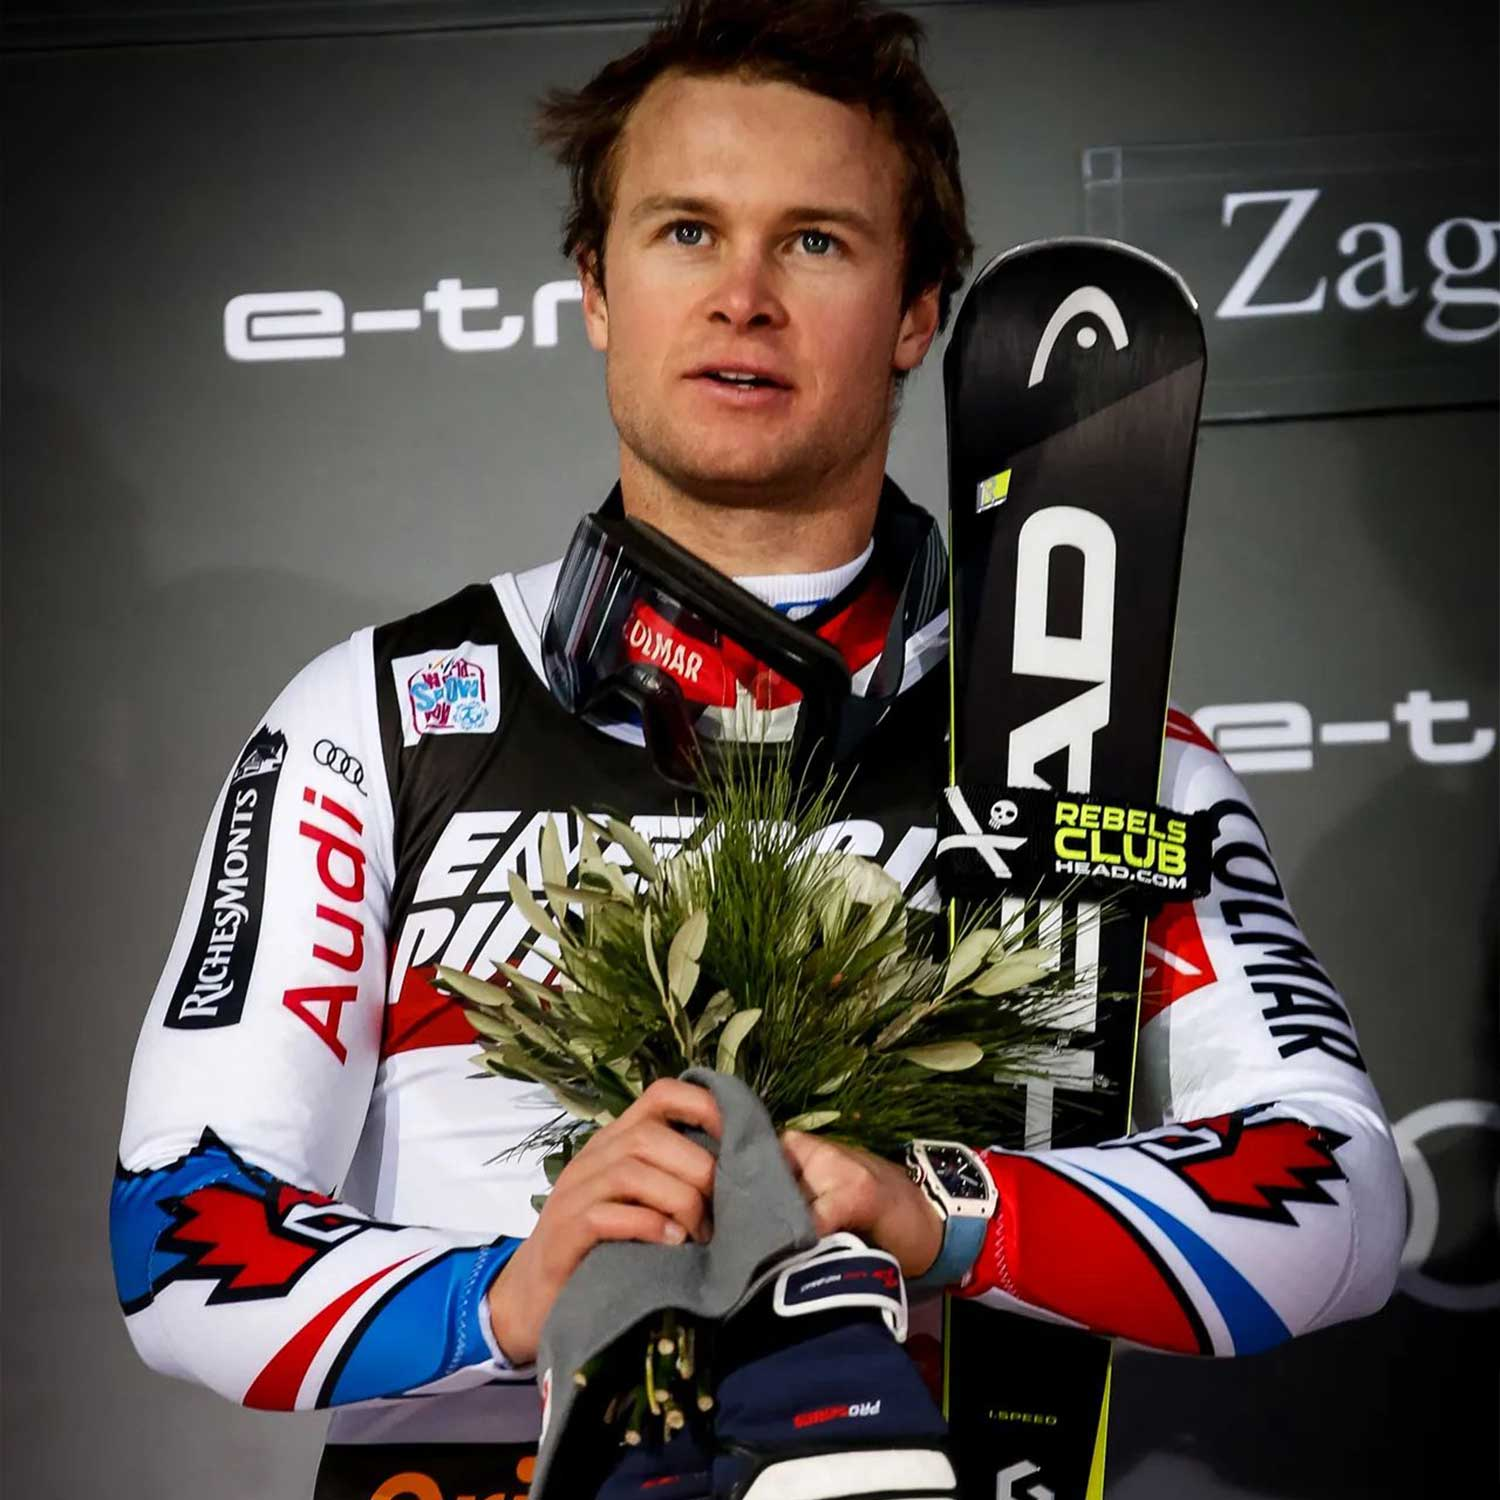 World Cup alpine ski racer and Olympic medalist, Alexis Pinturault